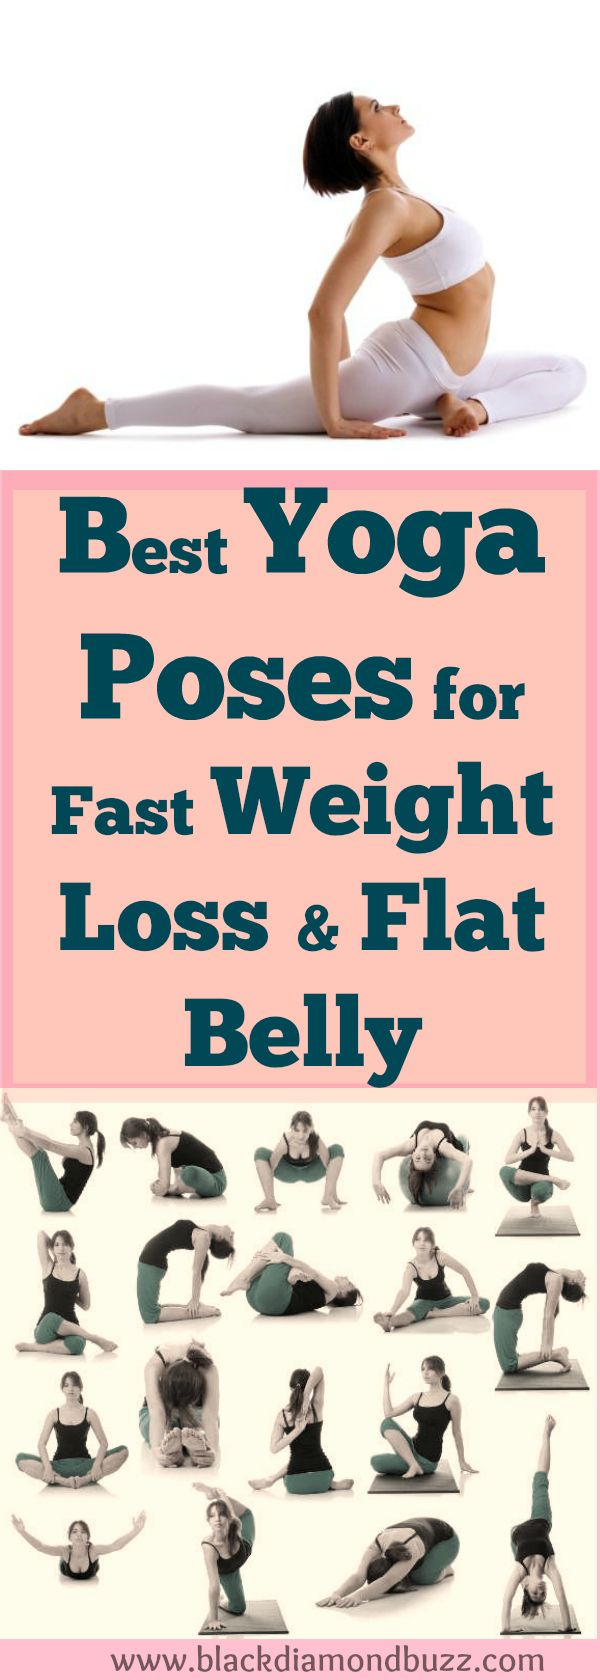 7 Best Yoga Exercises for Weight Loss & Flat Belly